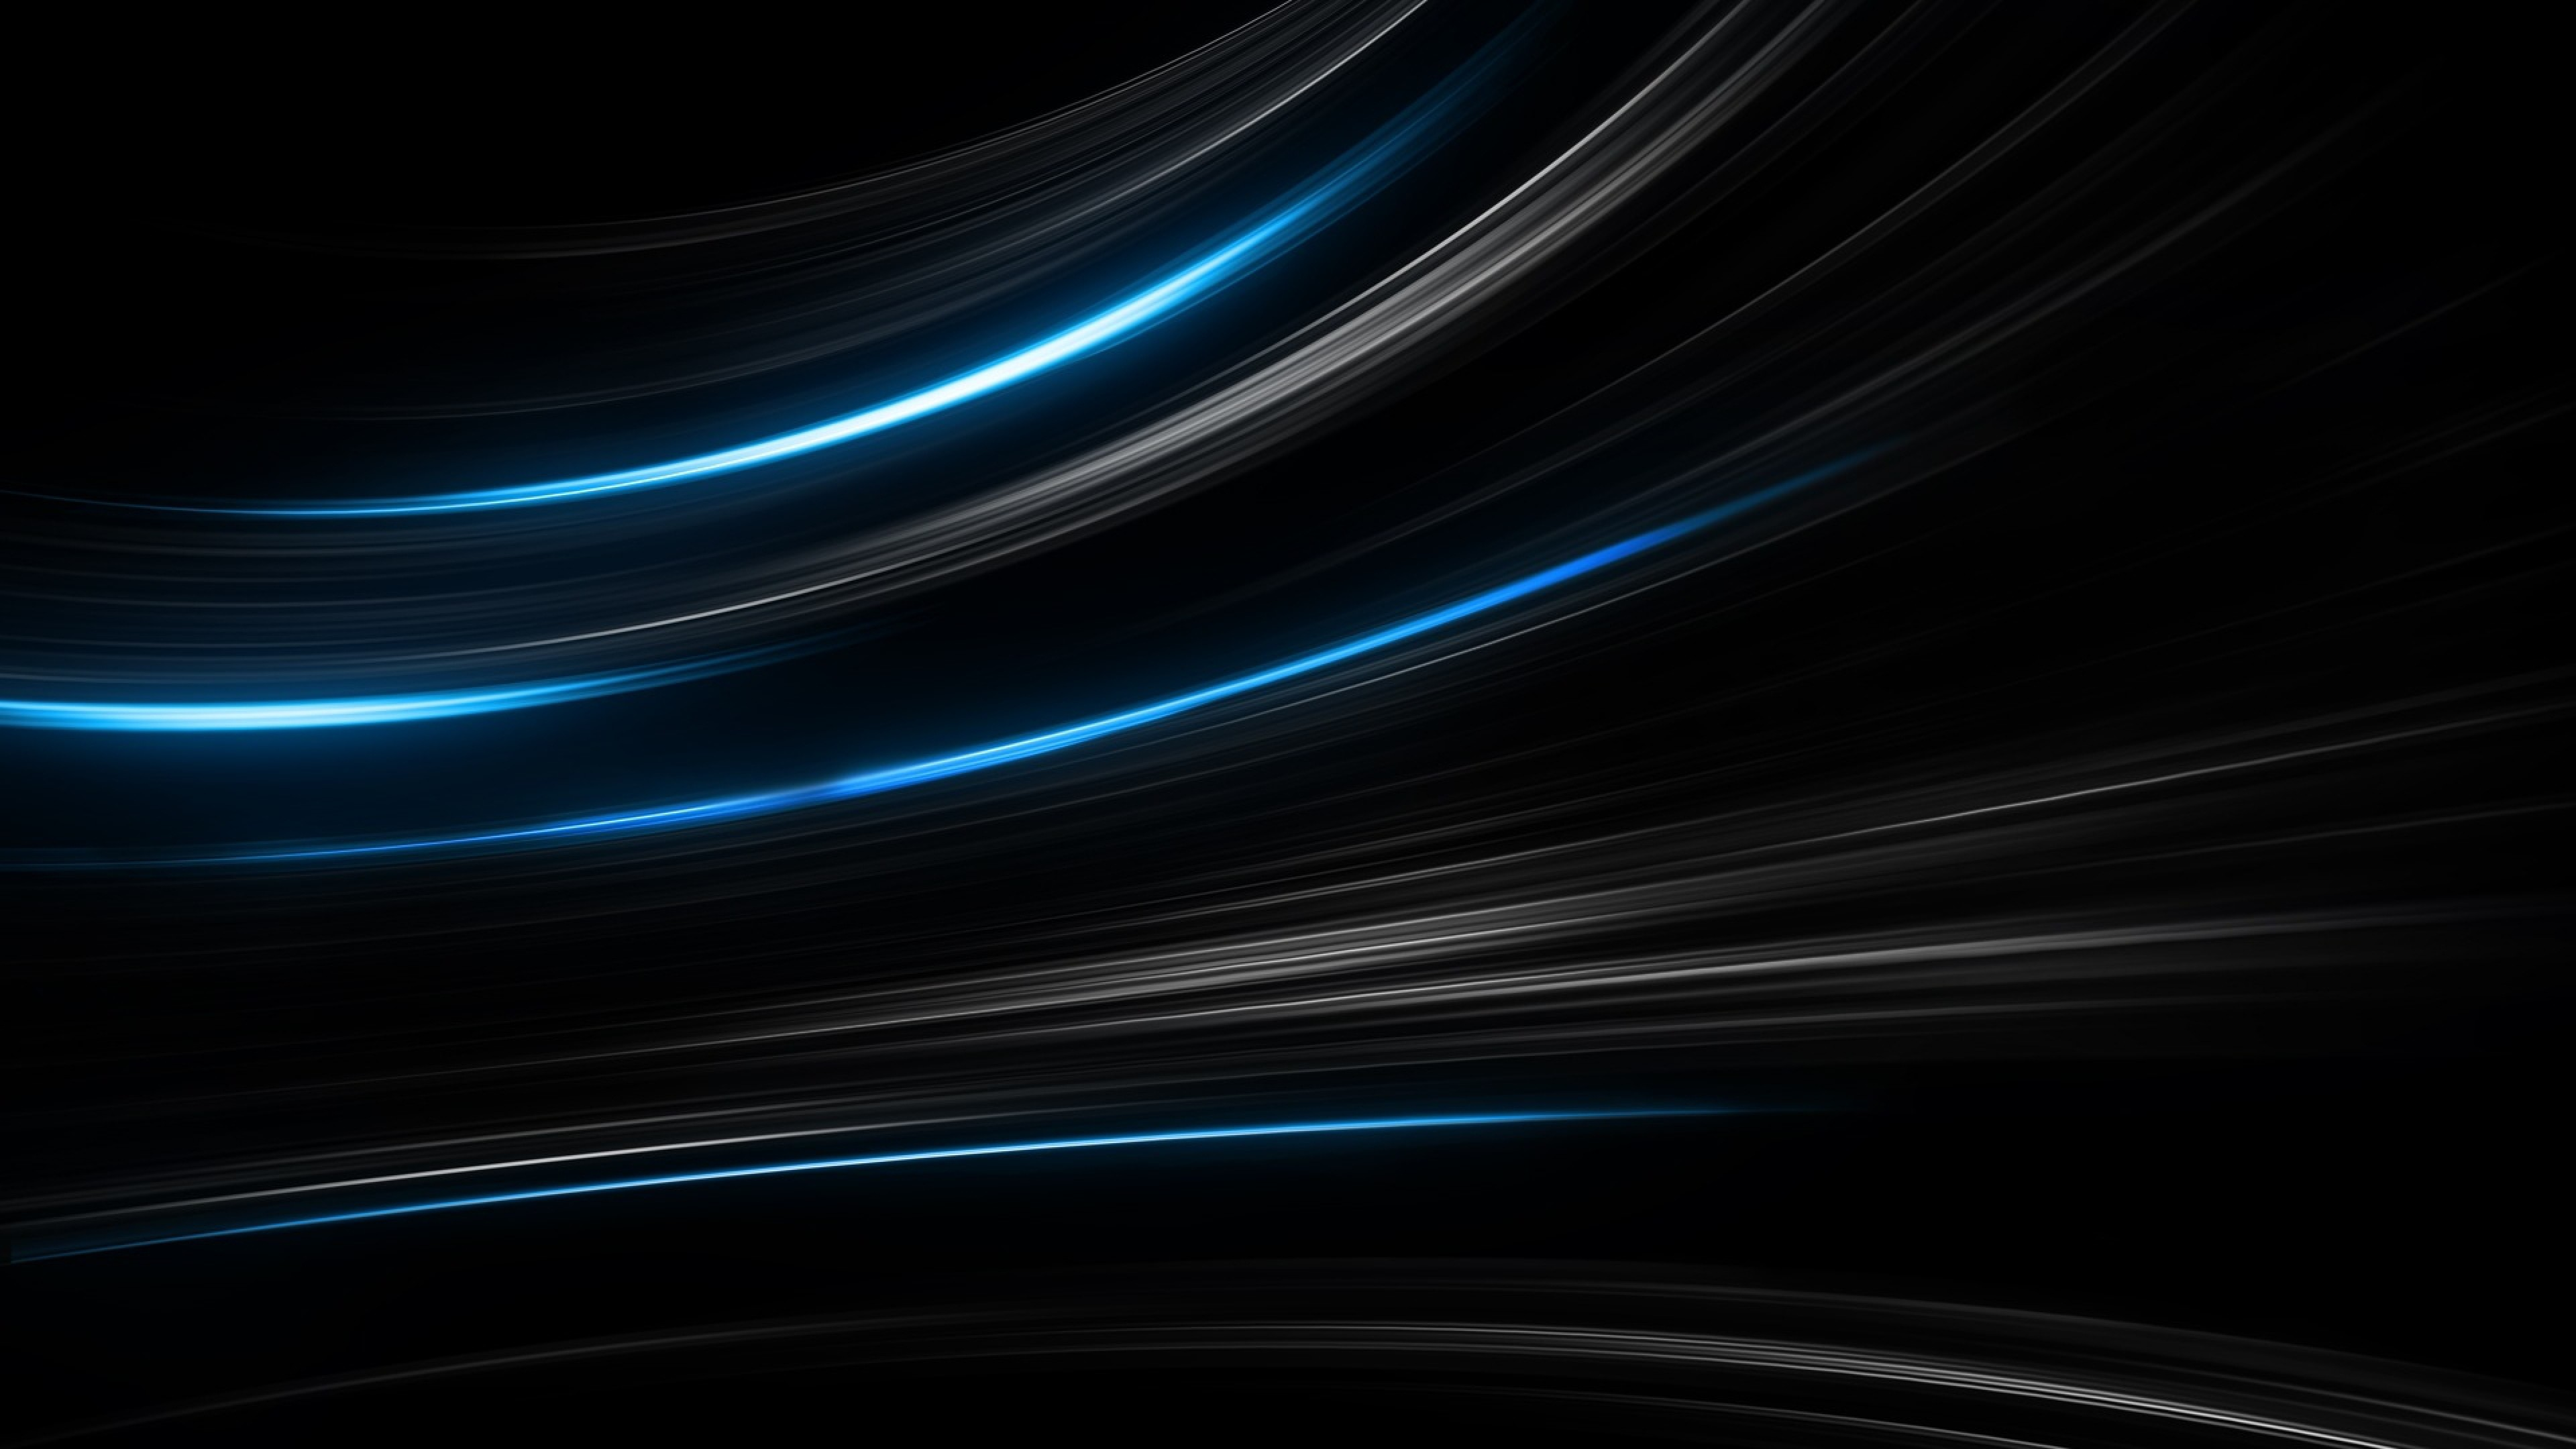 Black Abstract 3840 x 2160 Background